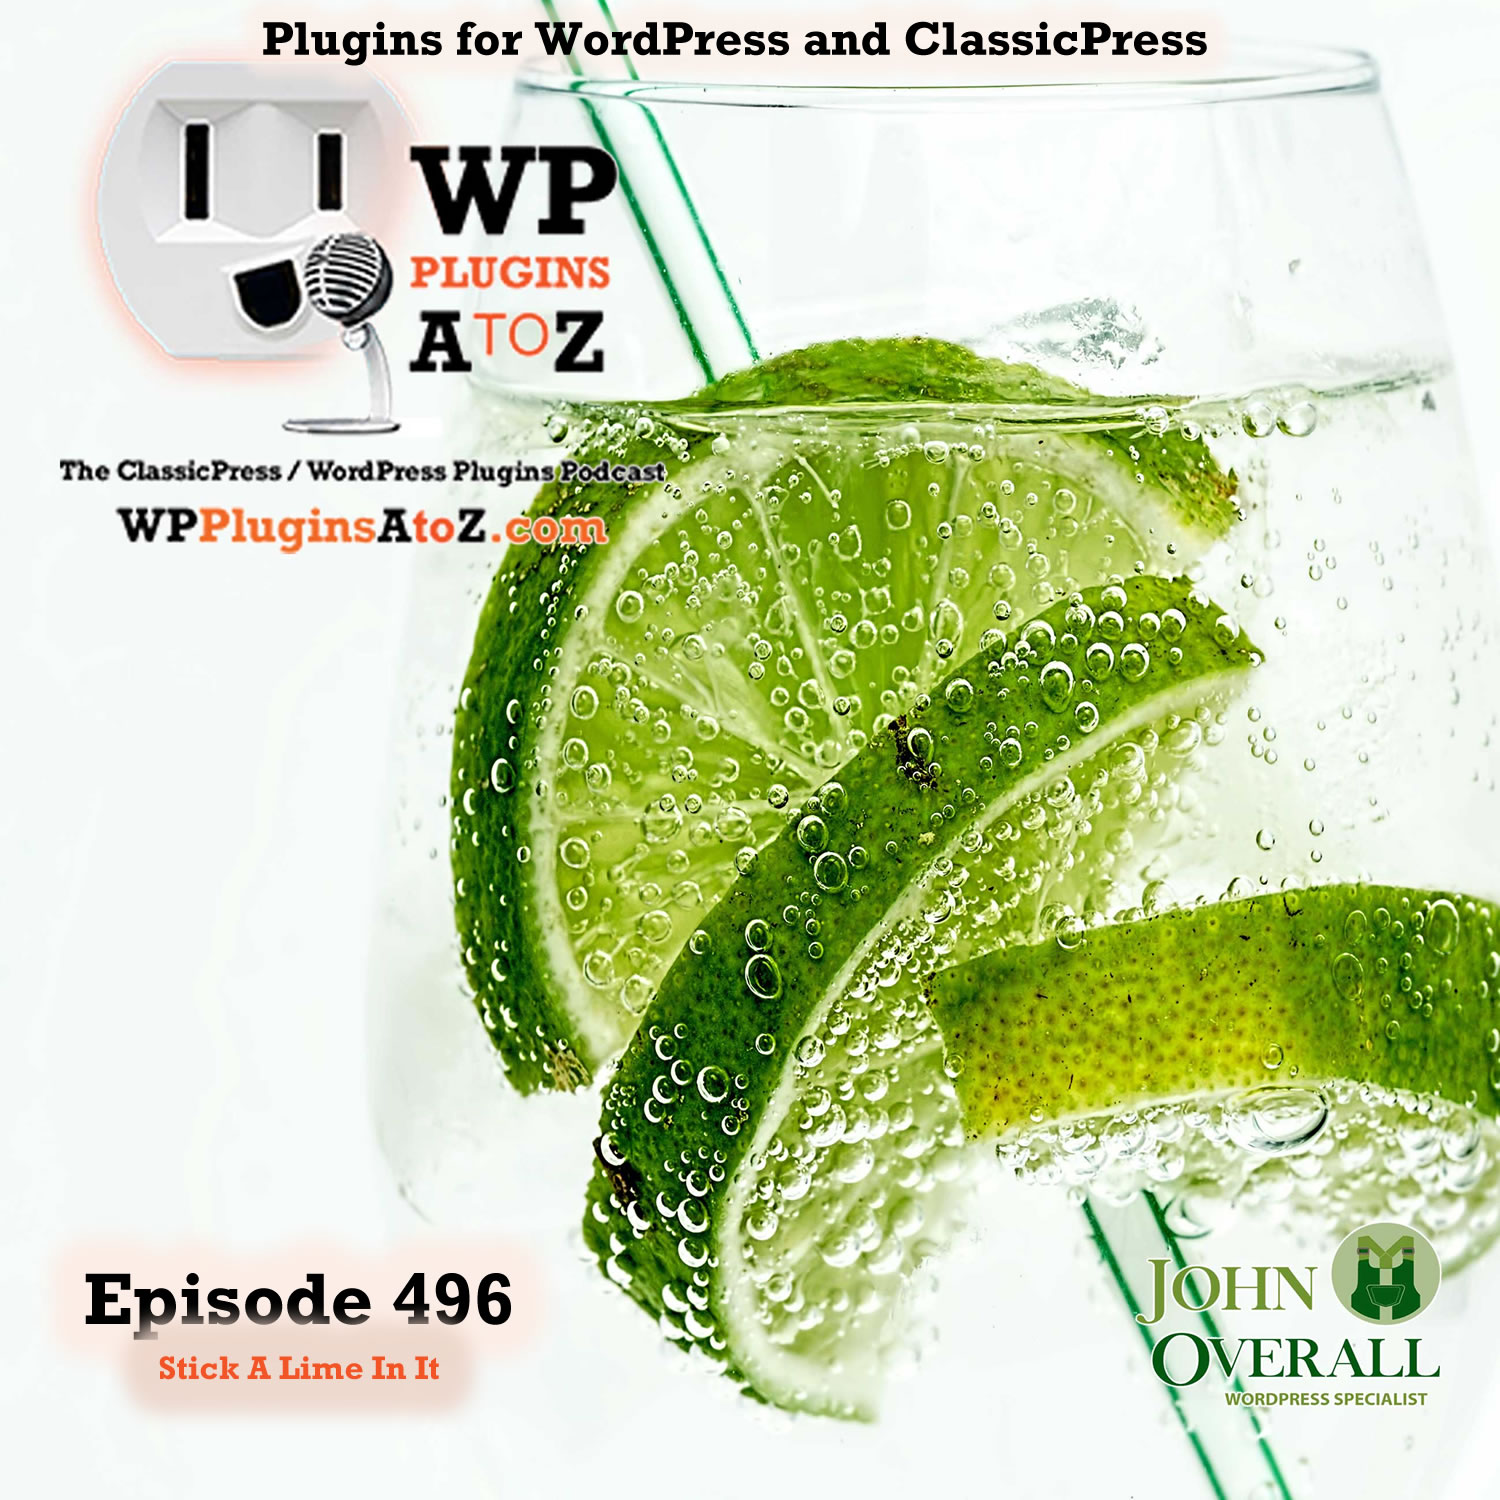 Stick A Lime In It It's Episode 496 on WP Plugins A to Z